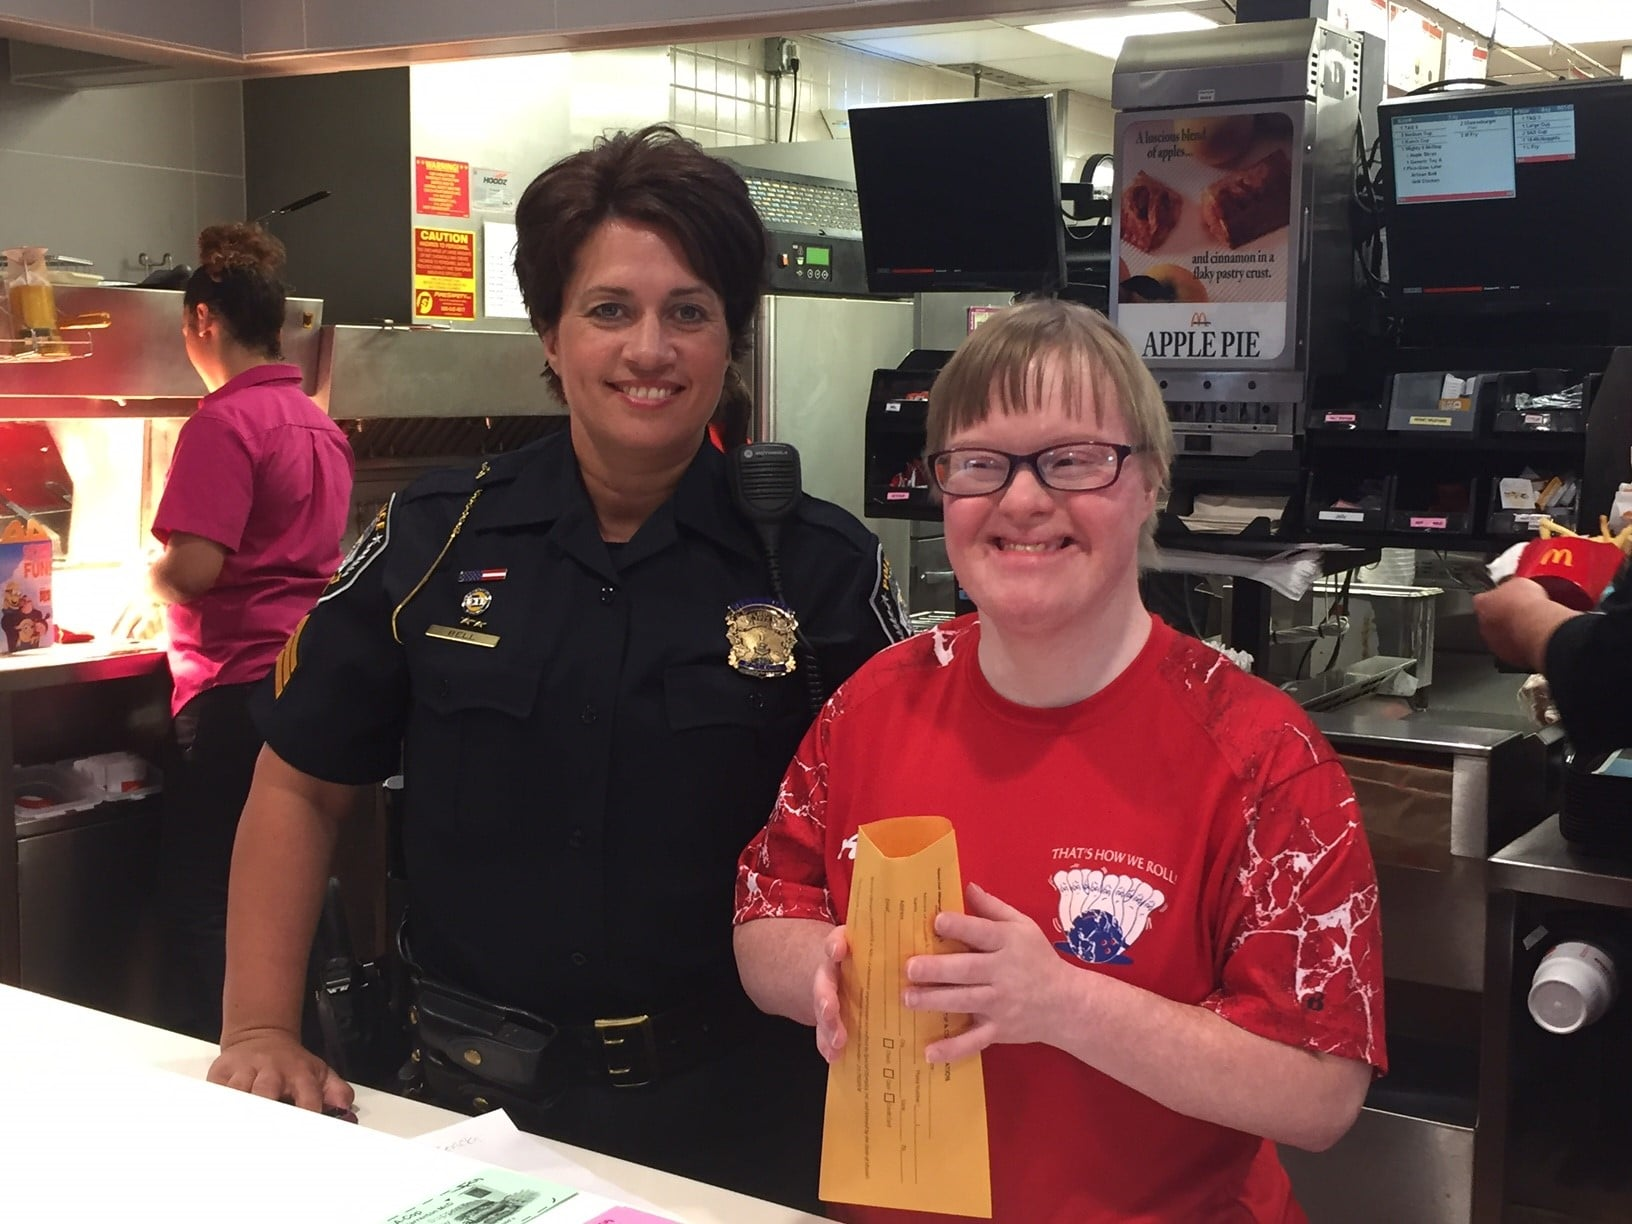 A law enforcement officer poses with an athlete holding a donation envelope and smiling at the camera